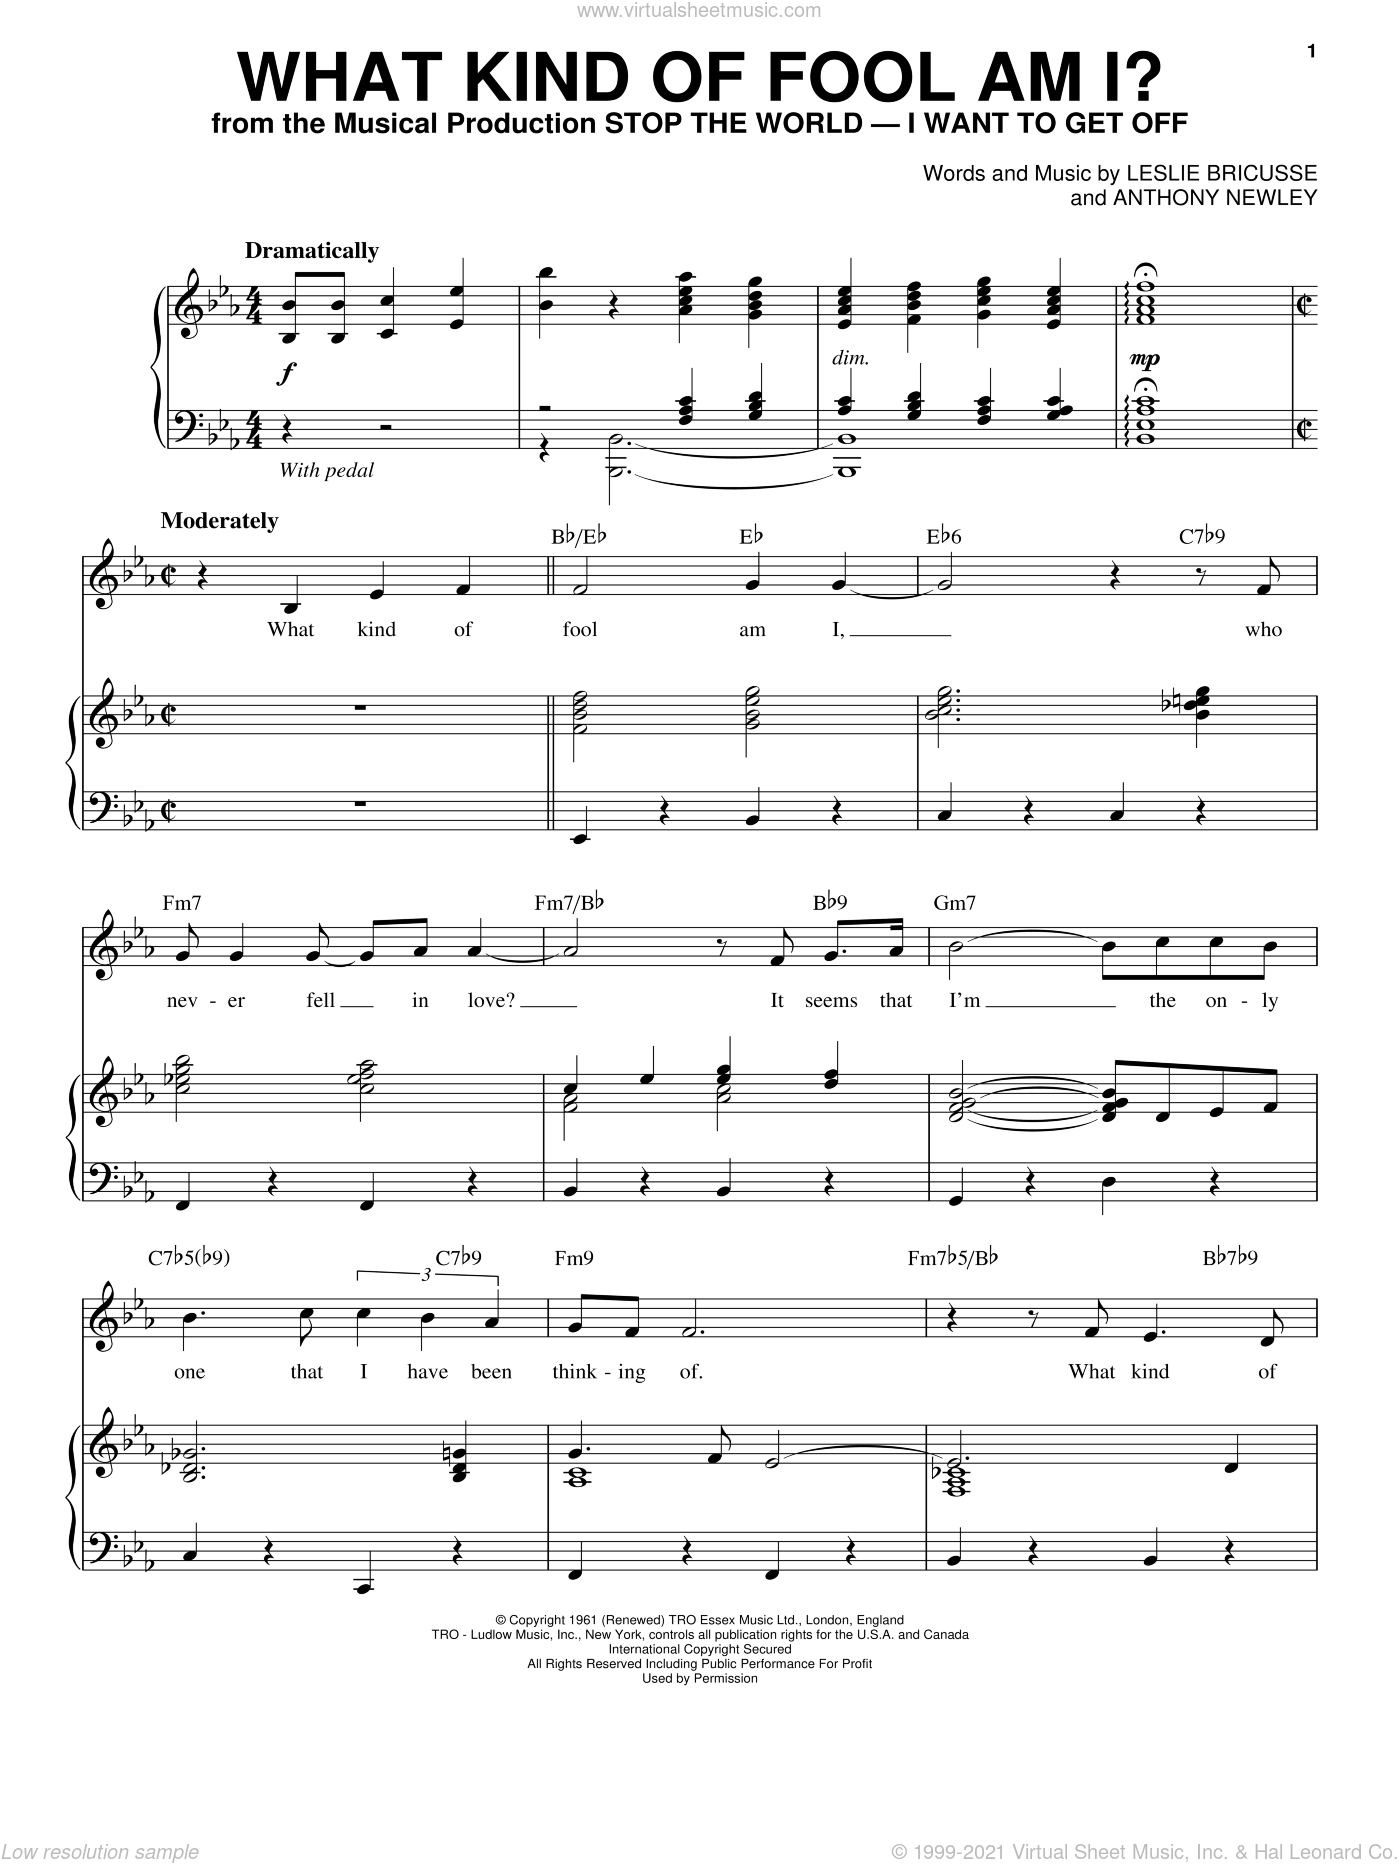 What Kind Of Fool Am I? sheet music for voice and piano by Anthony Newley and Leslie Bricusse, intermediate skill level